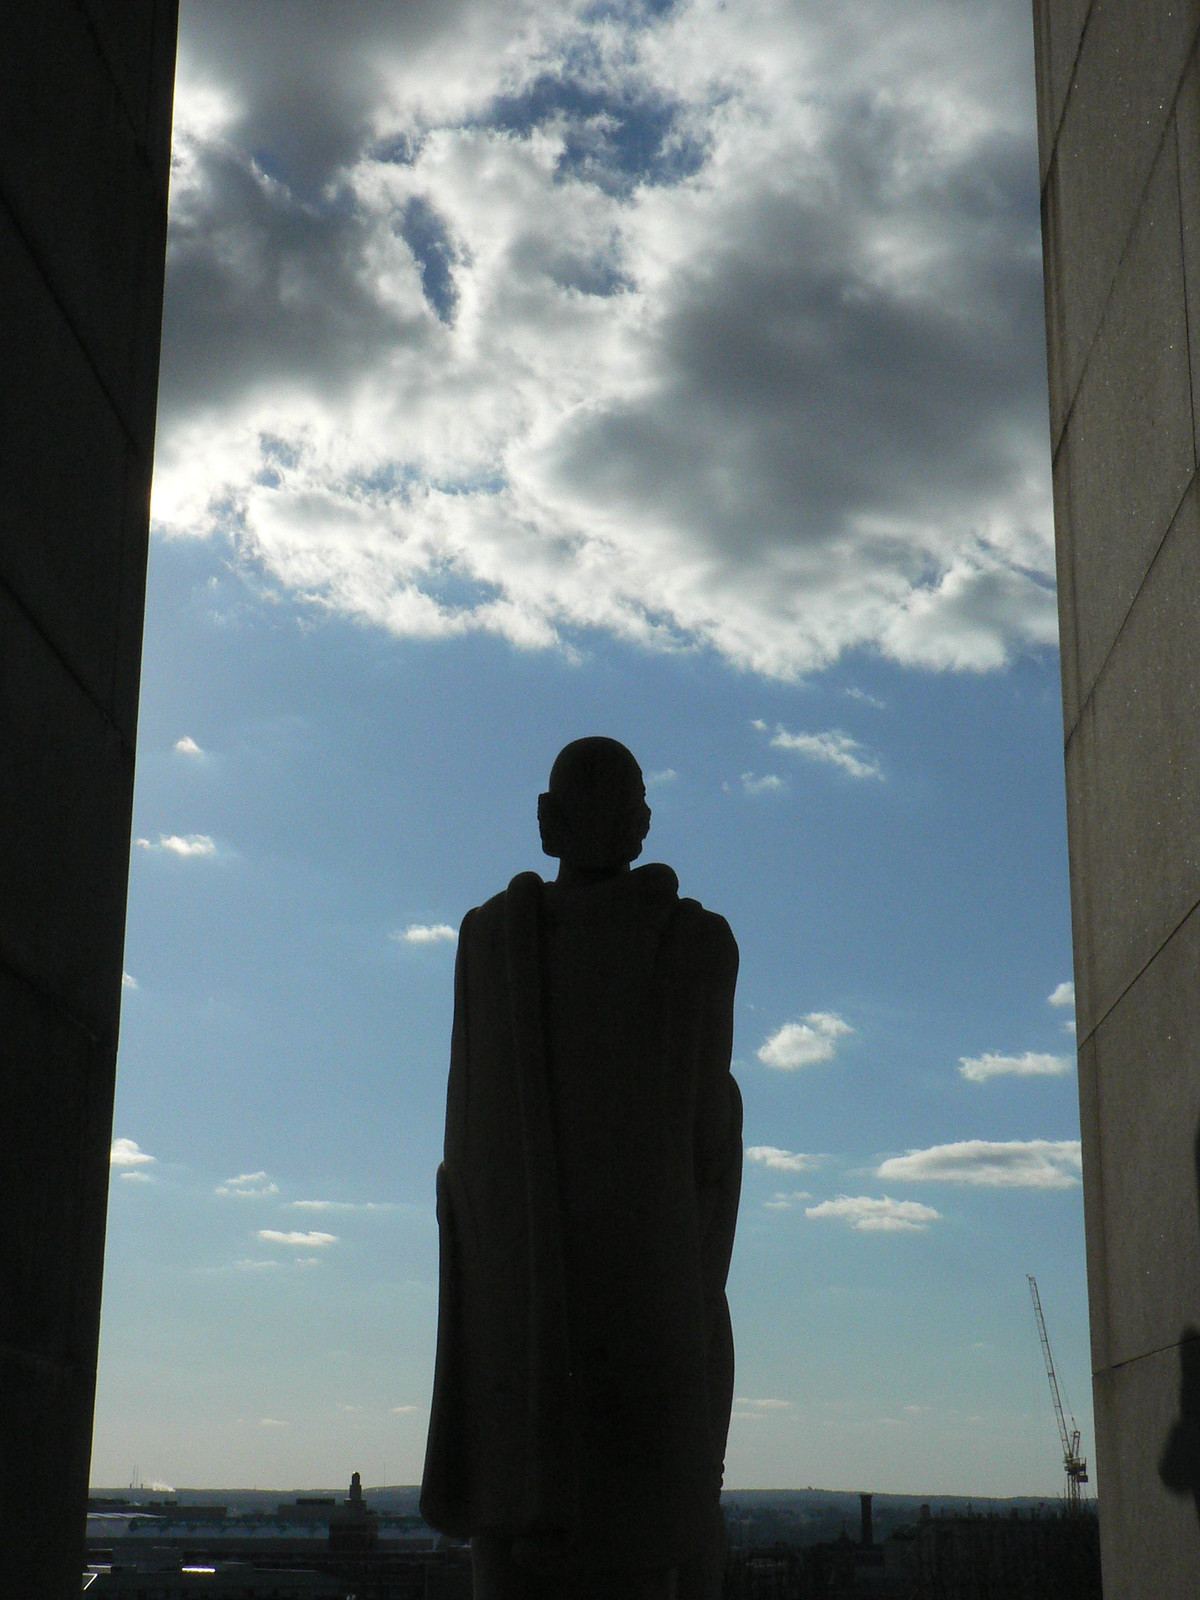 The statue of Roger Williams in Prospect Terrace Park, overlooking downtown Providence, RI. Taken by me in 2006.